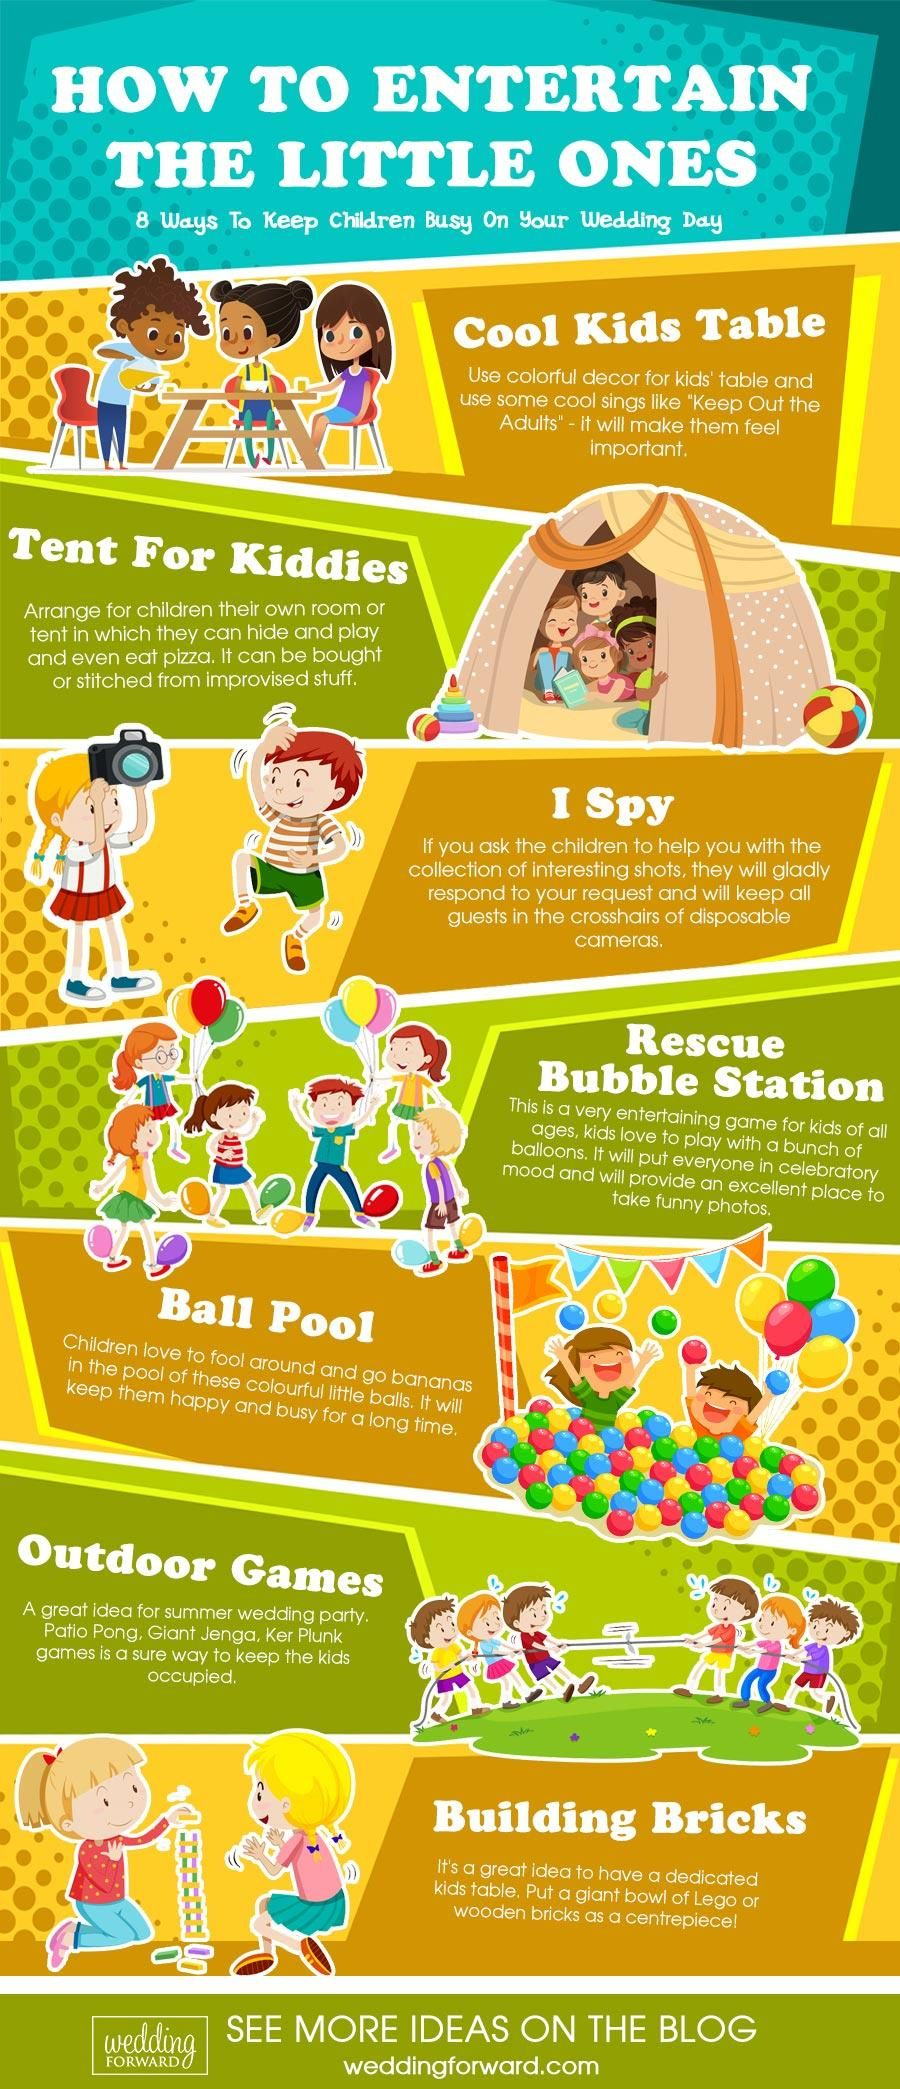 27 Wedding Games For Kids For Any Wedding Type For 2020 Wedding Games For Kids Wedding Games Wedding Reception Activities